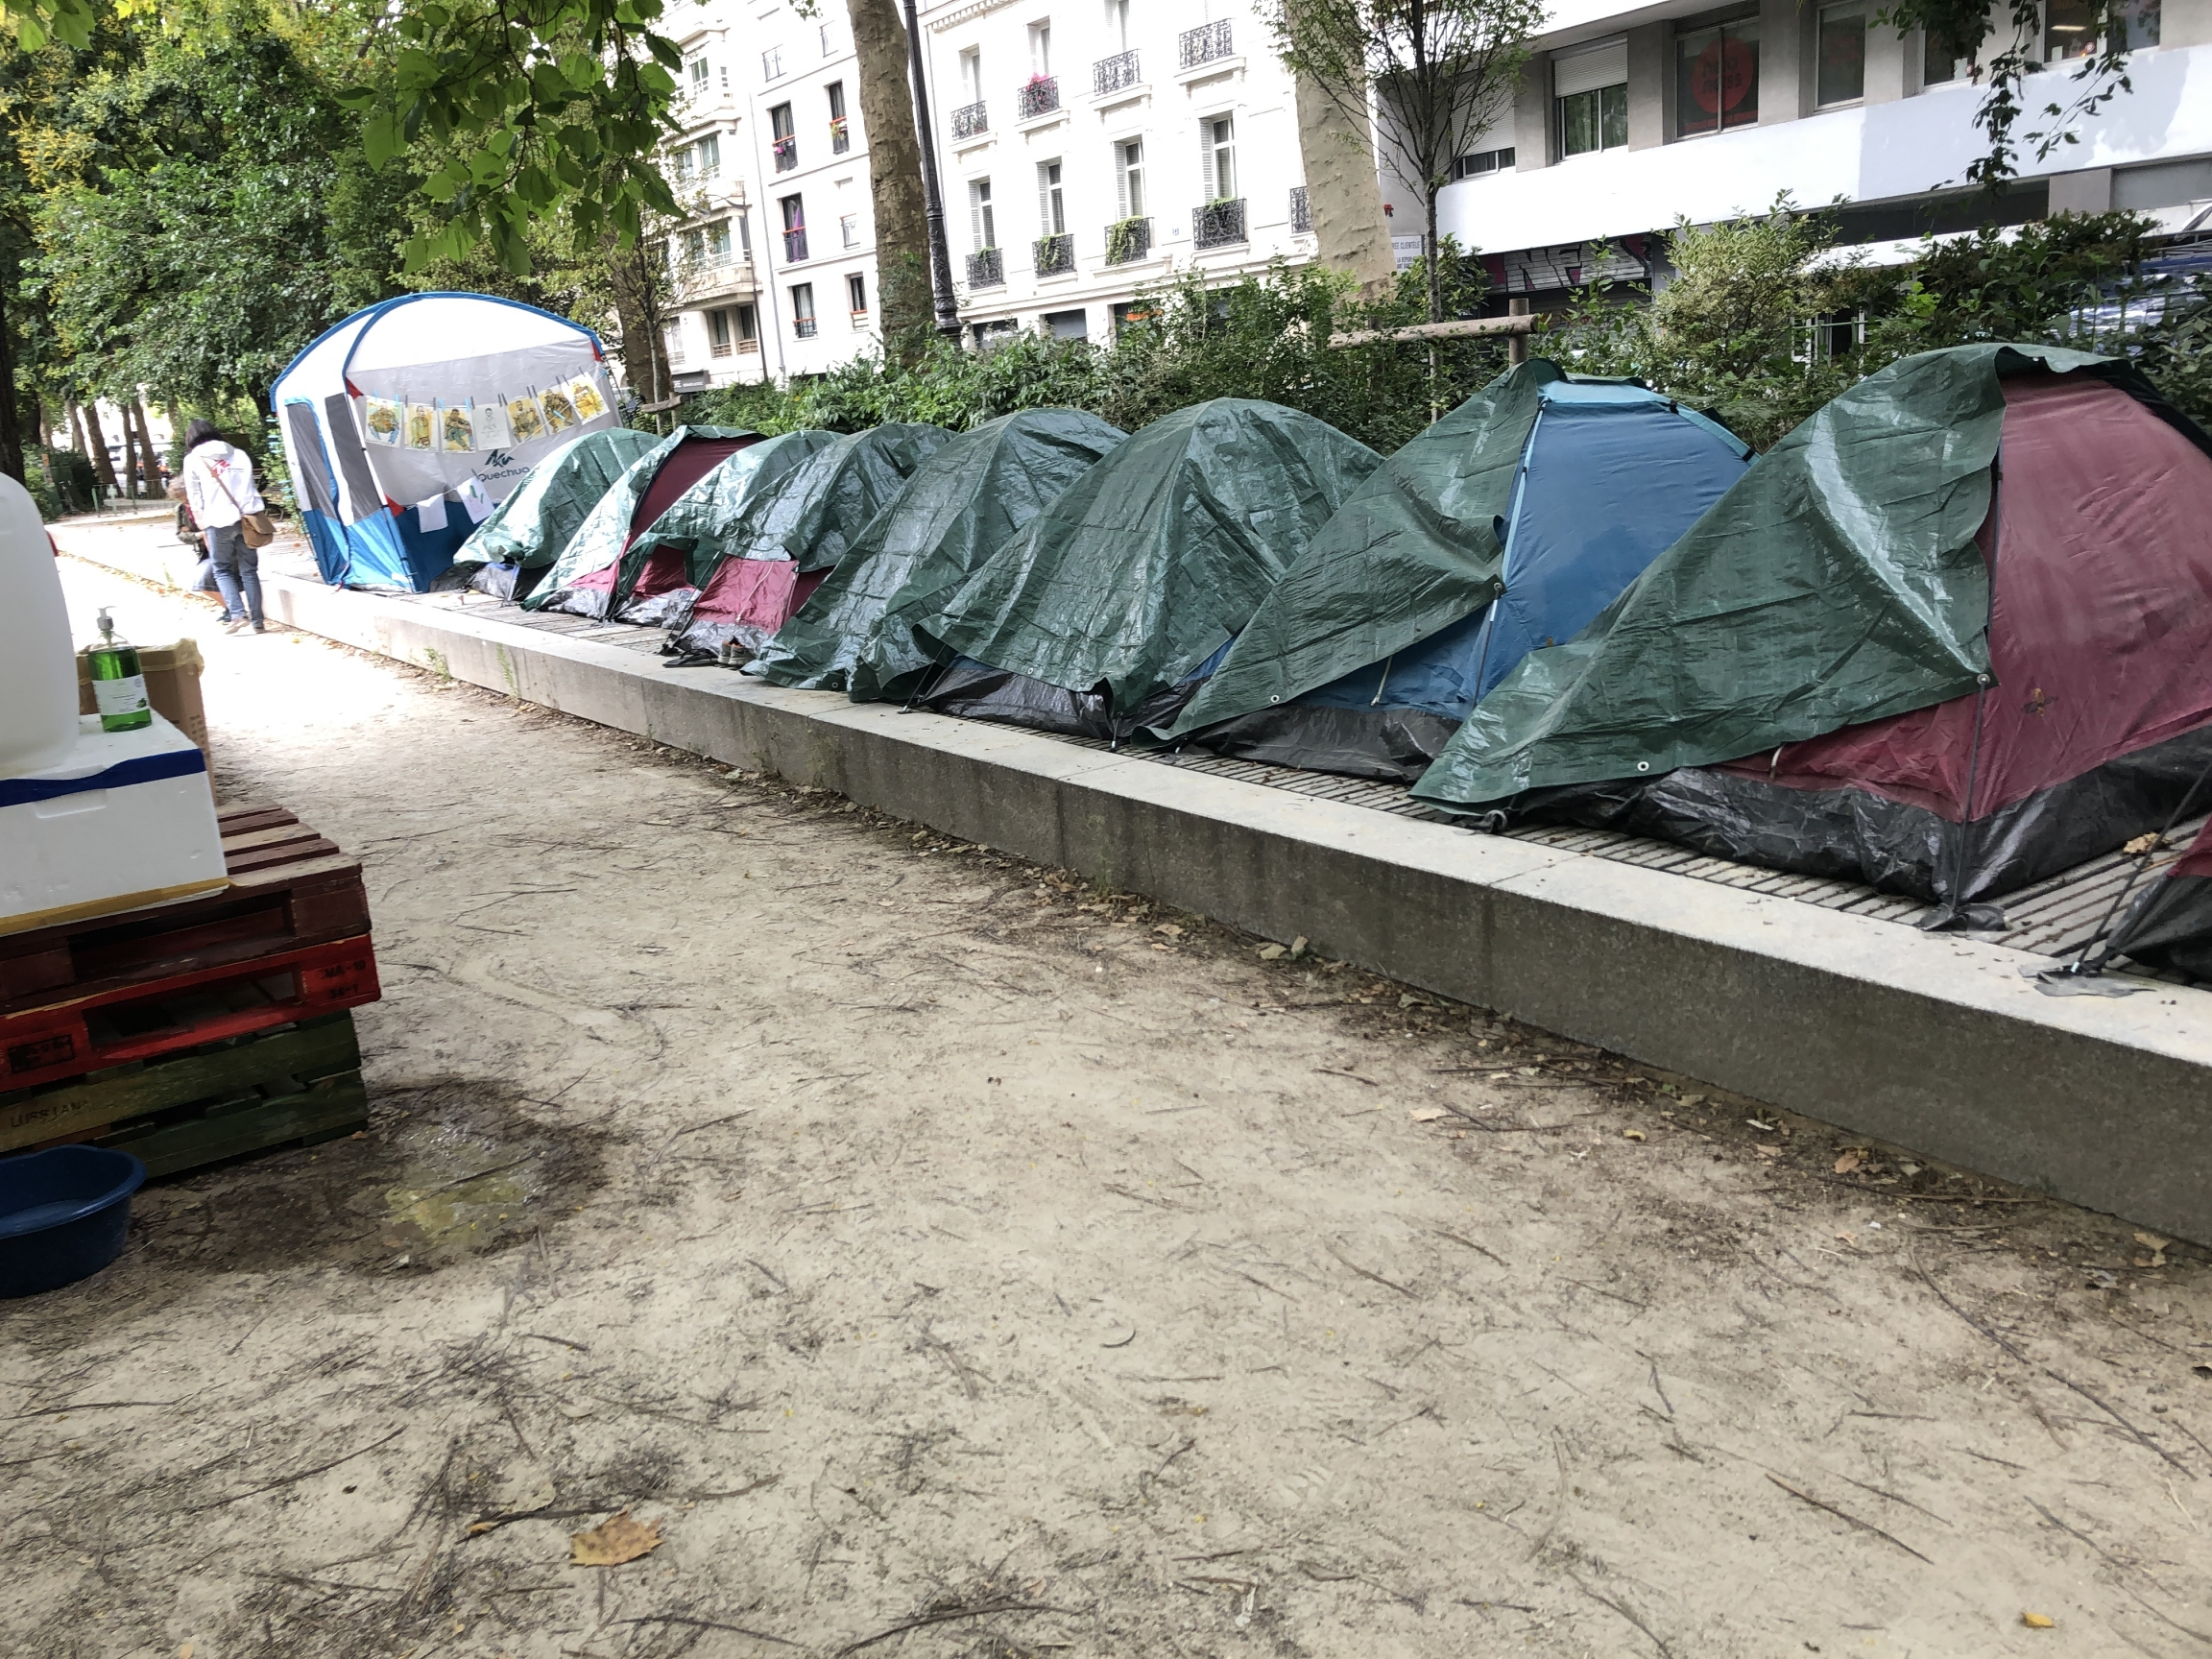 In early July, five nongovernmental organizations worked together toset up a camp for 100 migrant boys. They are pressuring the French government to establish permanent housing for the unaccompanied youth.